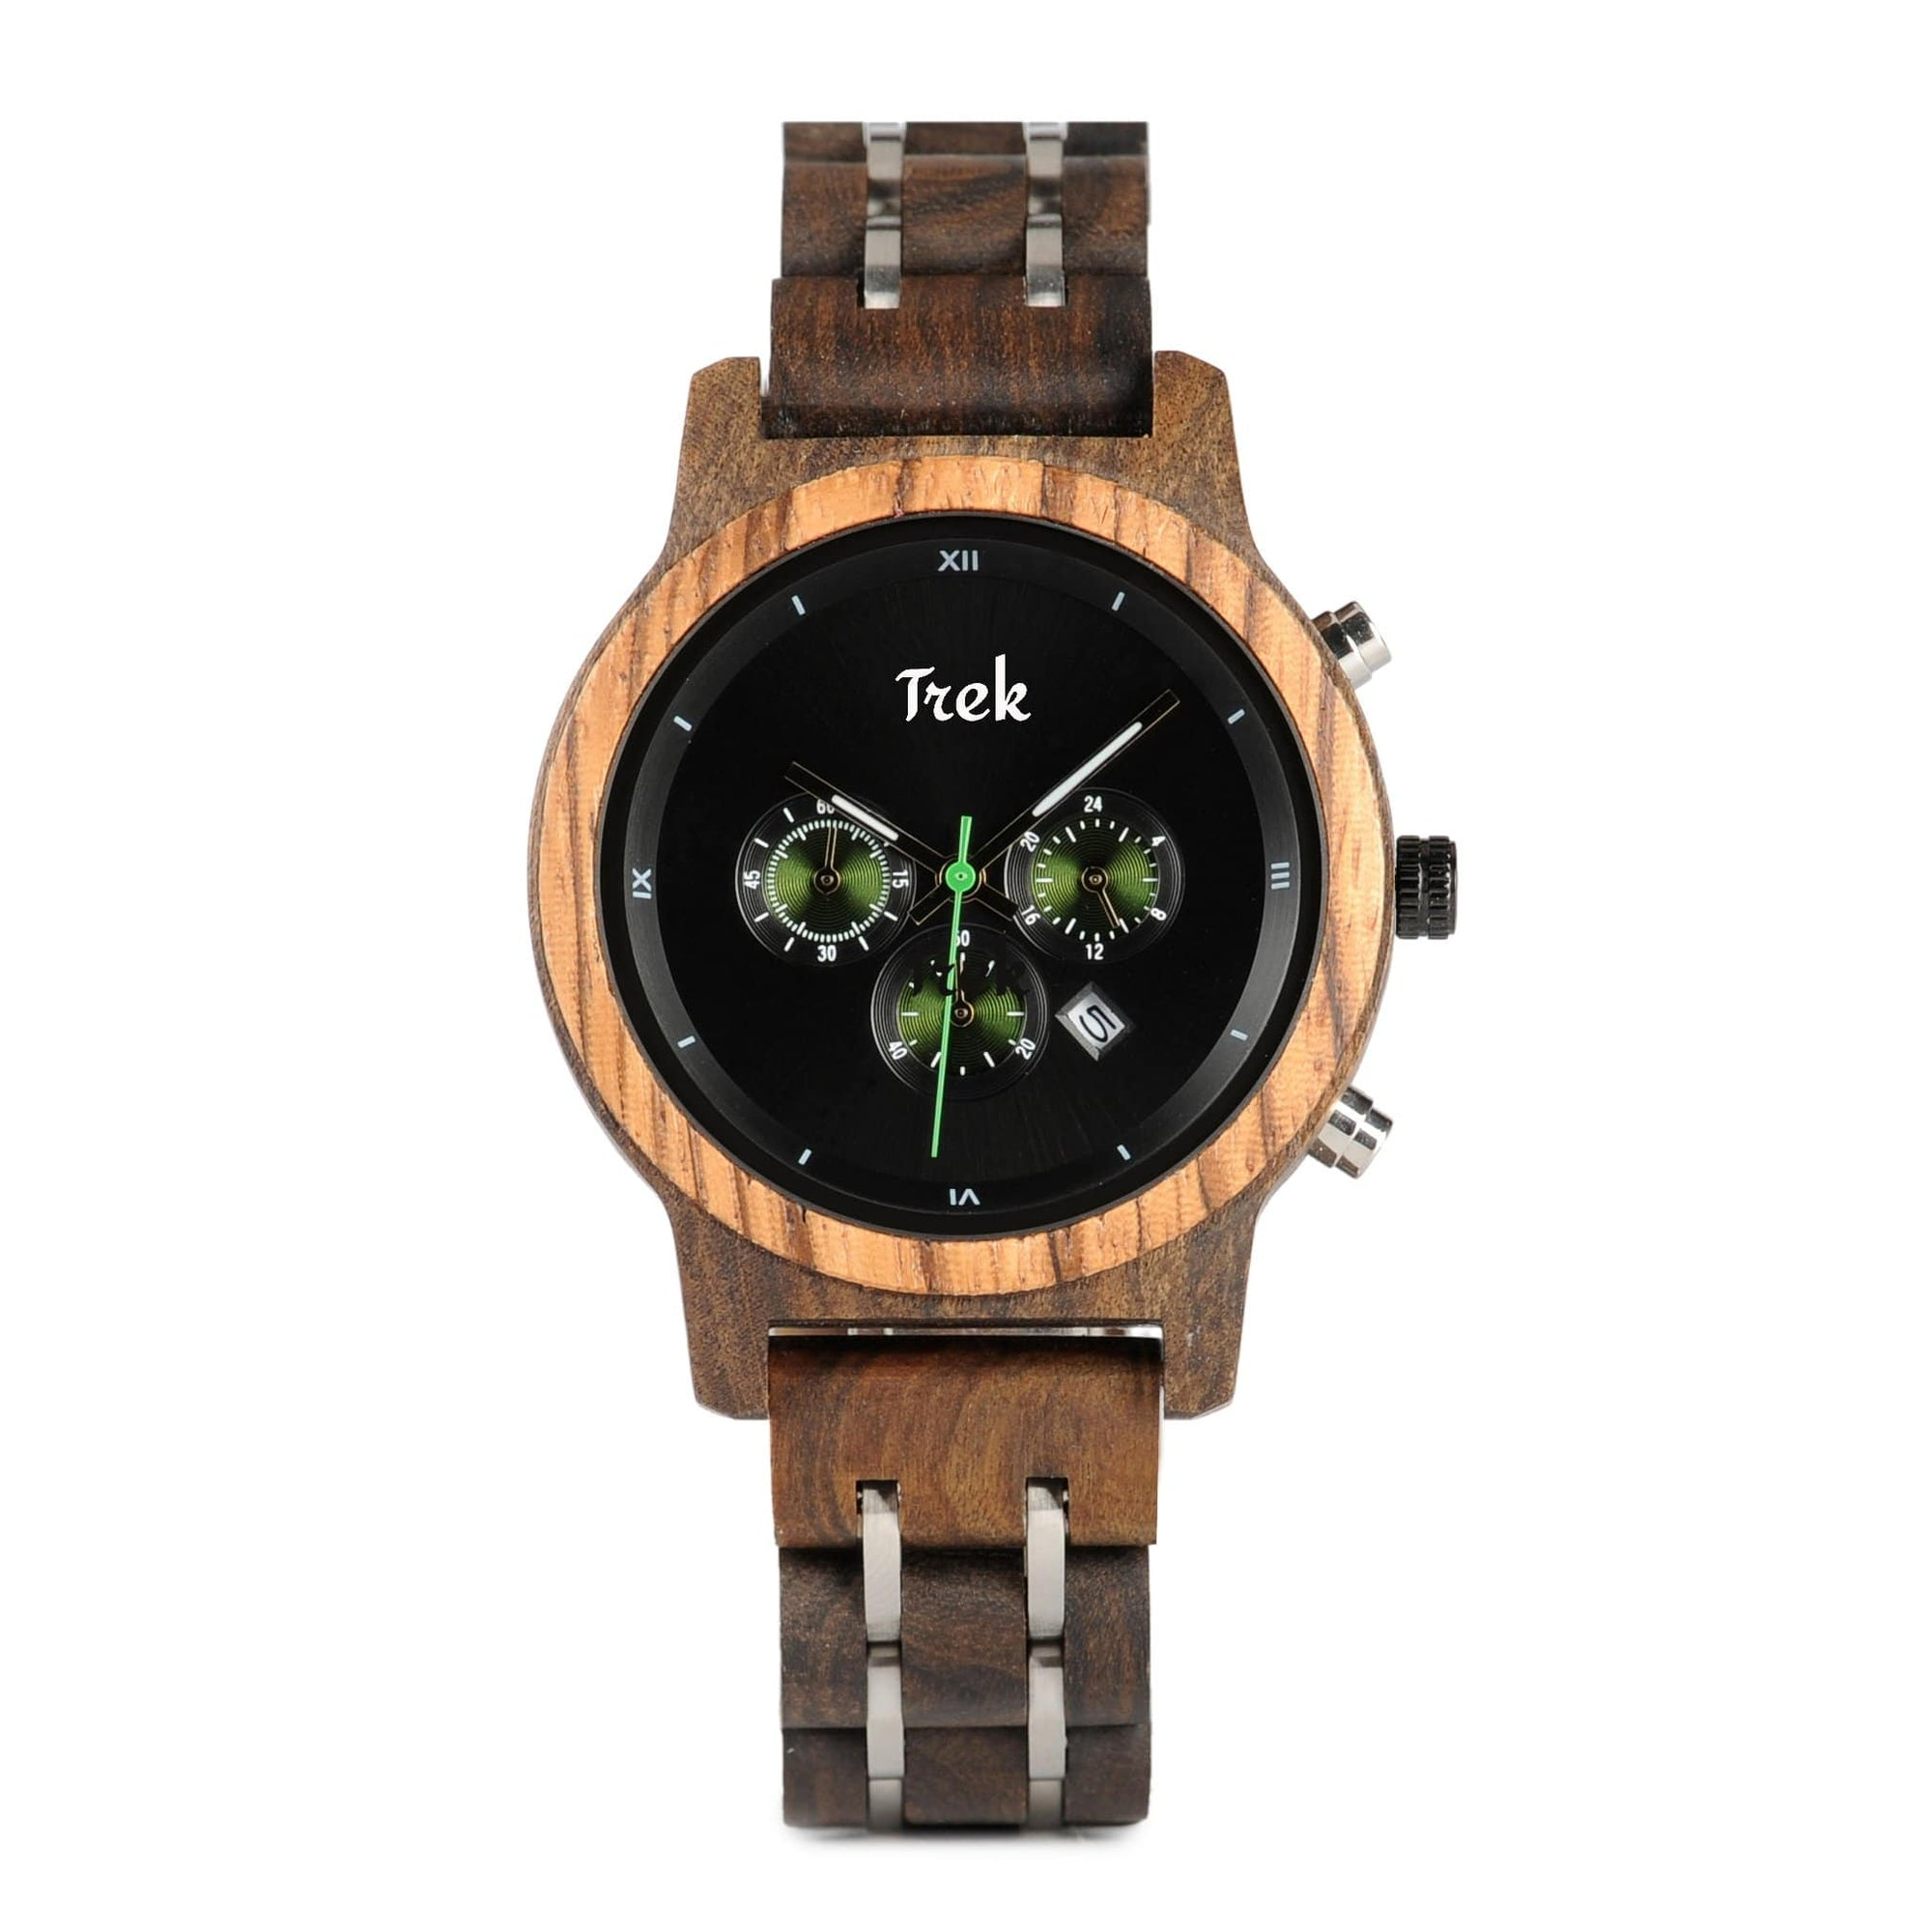 Edith Women's Luxury Chronograph Wood Watch (Ebony Black) - Trek Watches